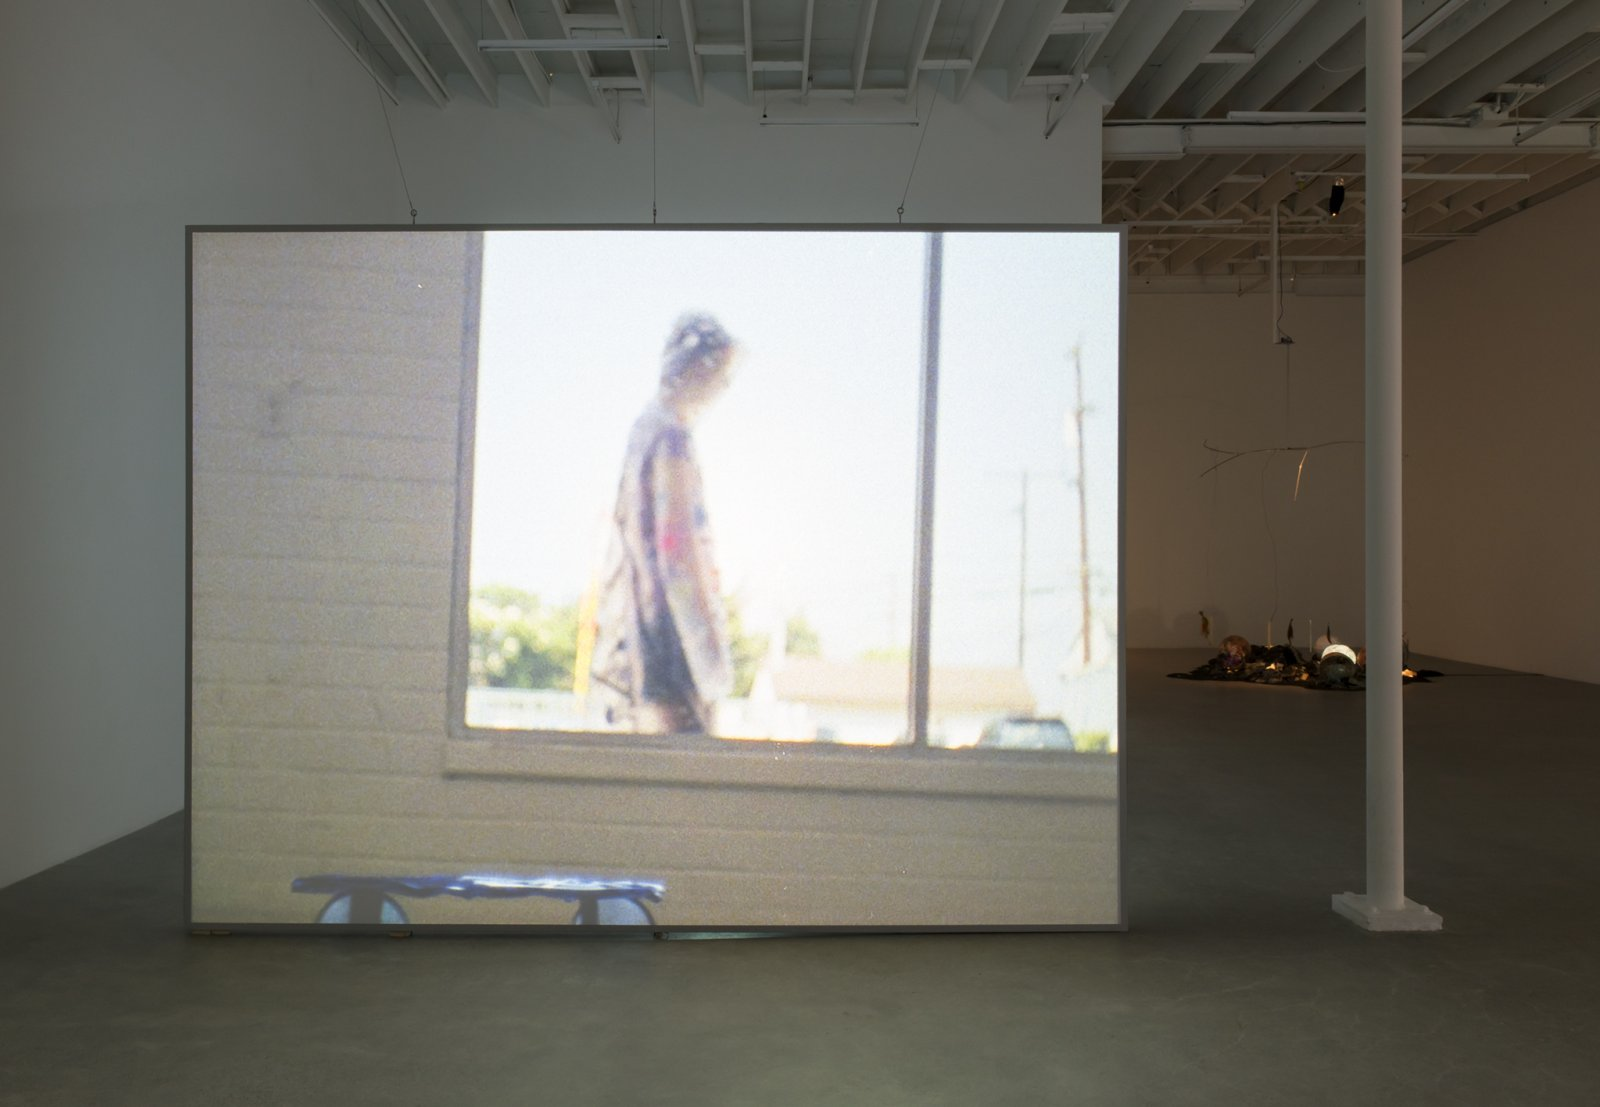 Julia Feyrer,New Pedestrians, 2018, 16mm film transferred to digital with sound, 4 minutes